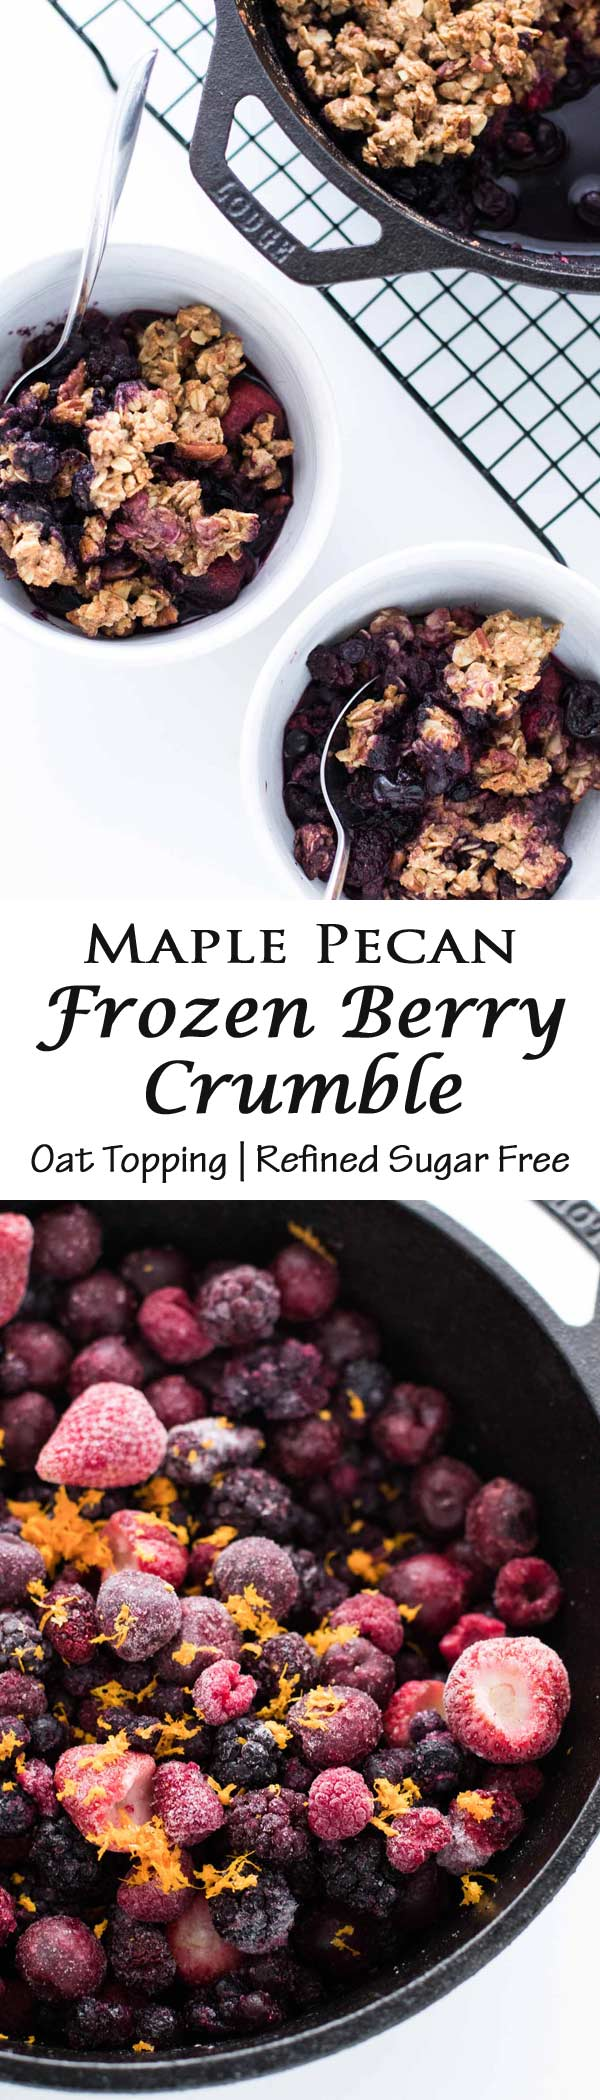 This healthy frozen berry crumble has a crunchy maple pecan oat topping with no refined sugar. Don't forget a scoop of vanilla ice cream on top for dessert!